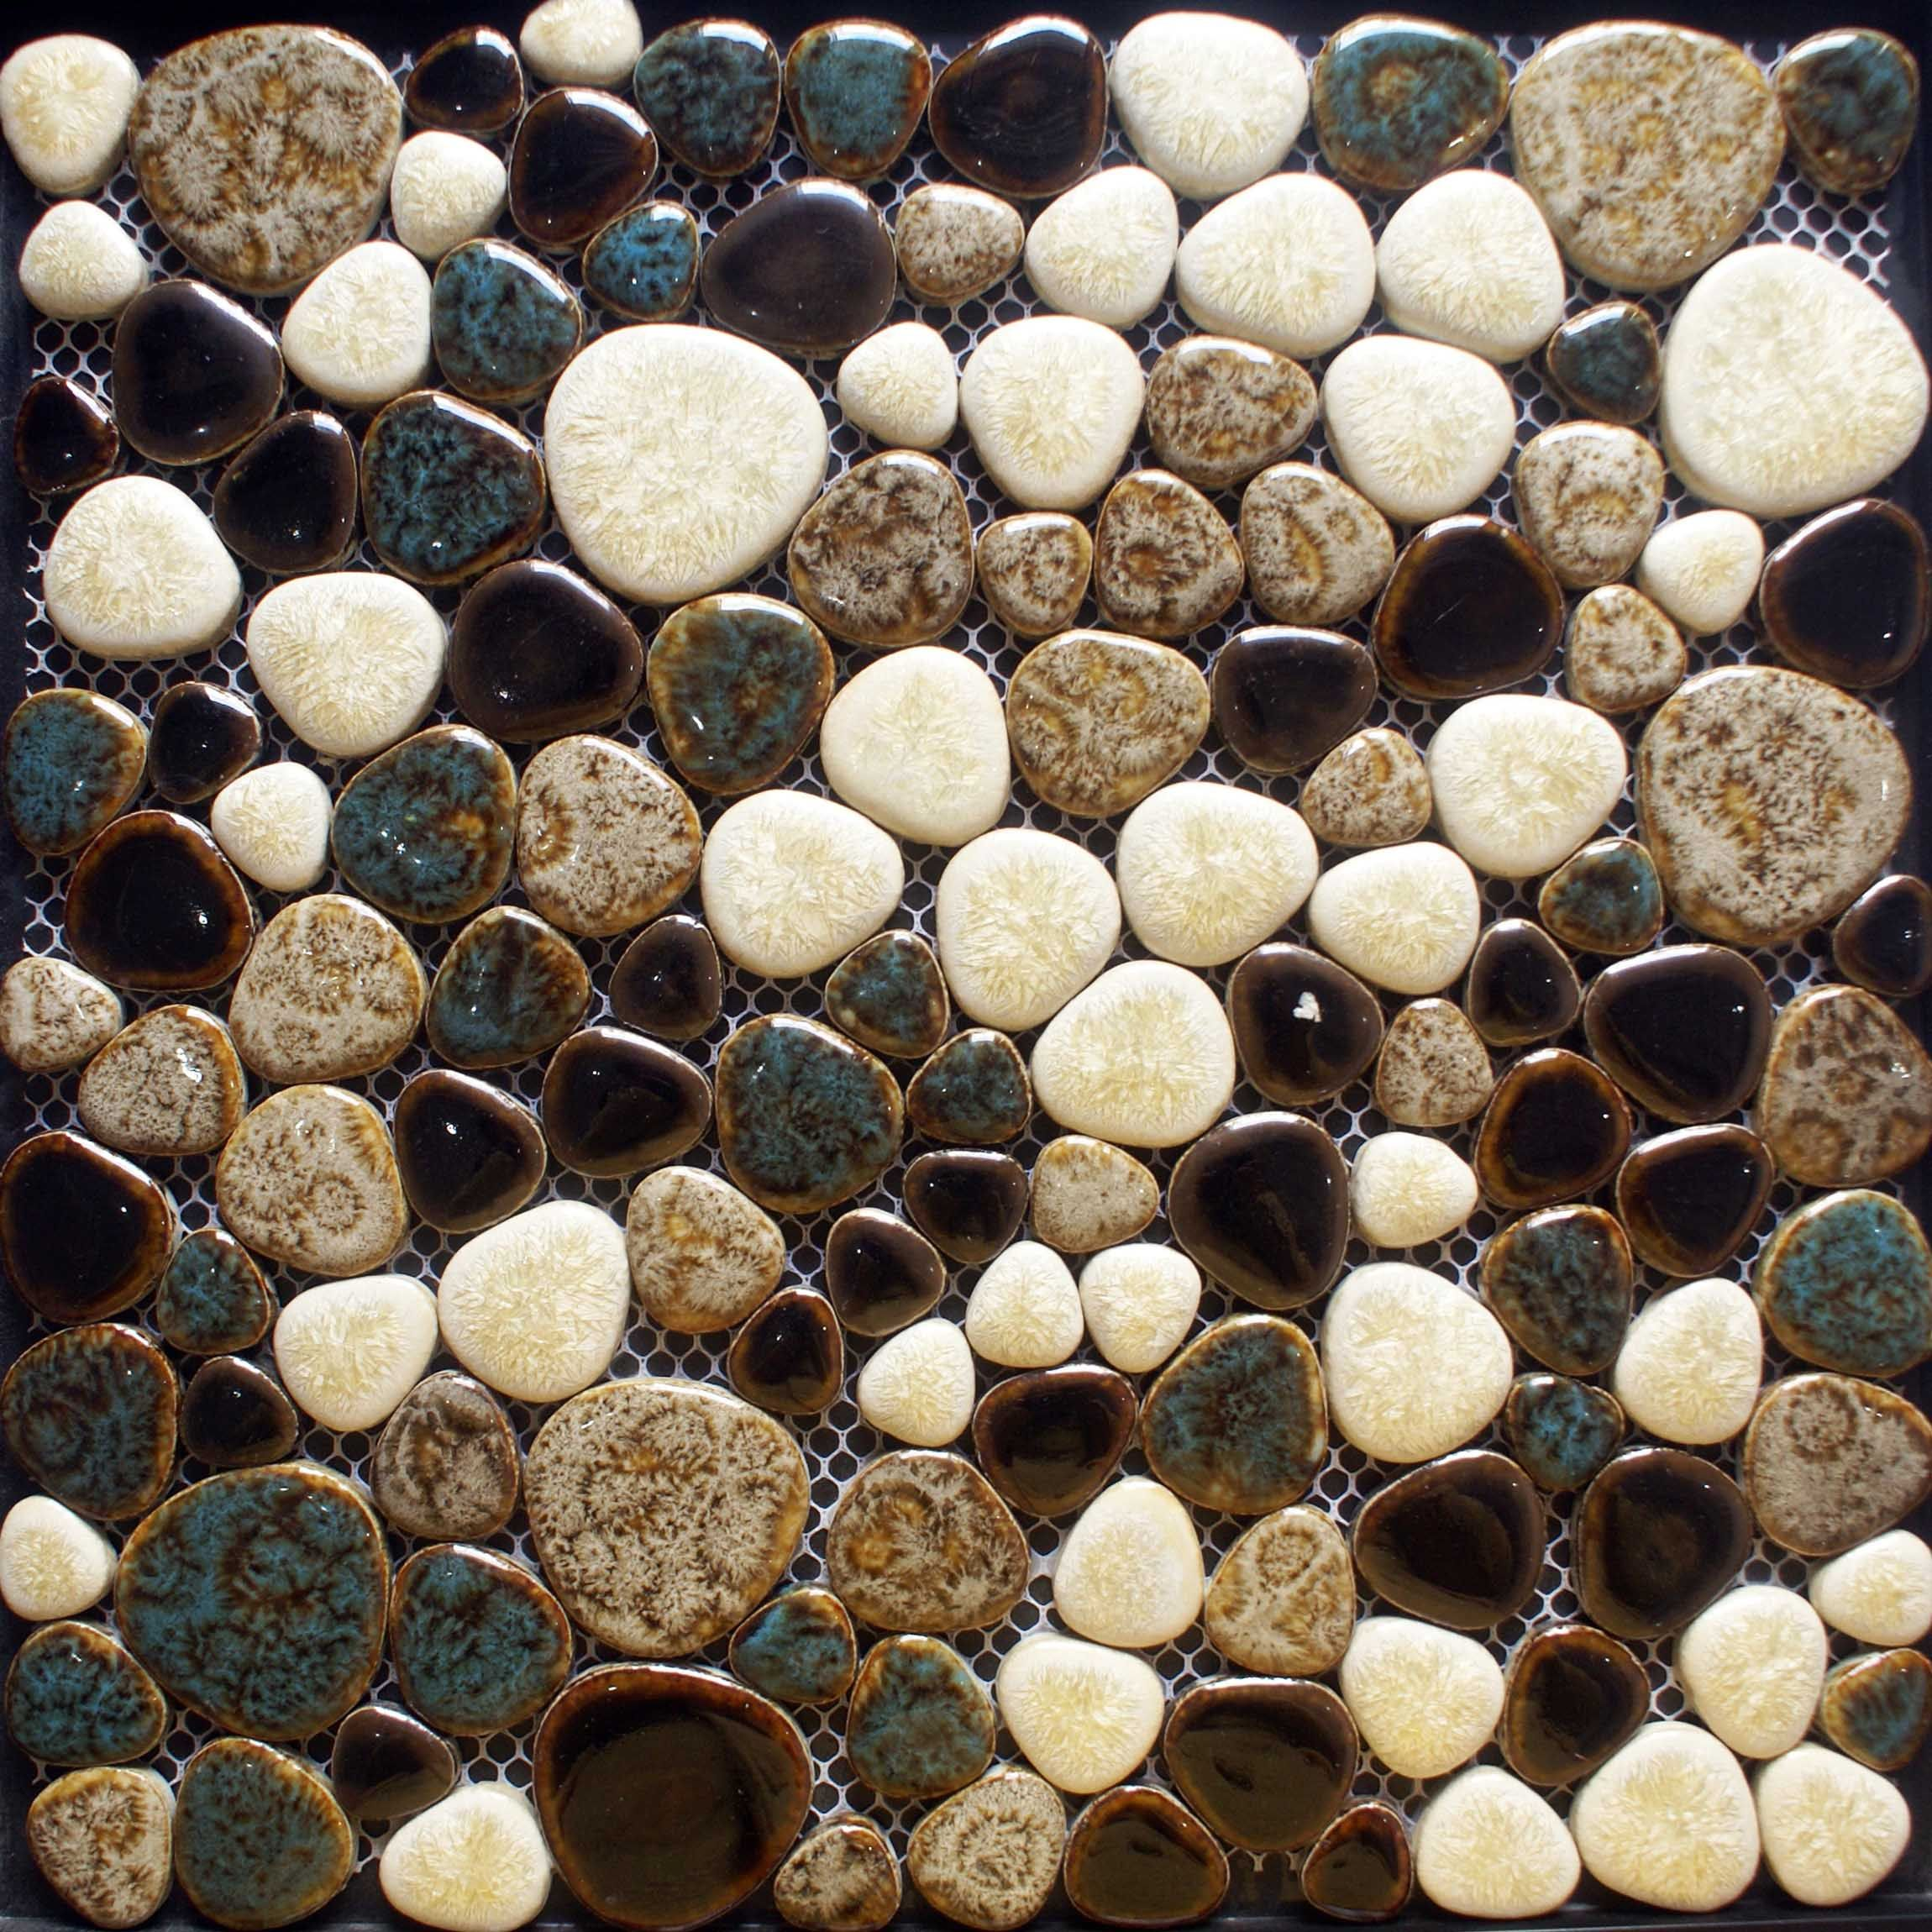 Heart shaped porcelain pebble tile sheets mosaic art mixed porcelain tile sheets glazed ceramic mosaic cheap pebble tiles heart shaped wall decor kitchen bathroom flooring size color cream and brown dailygadgetfo Gallery